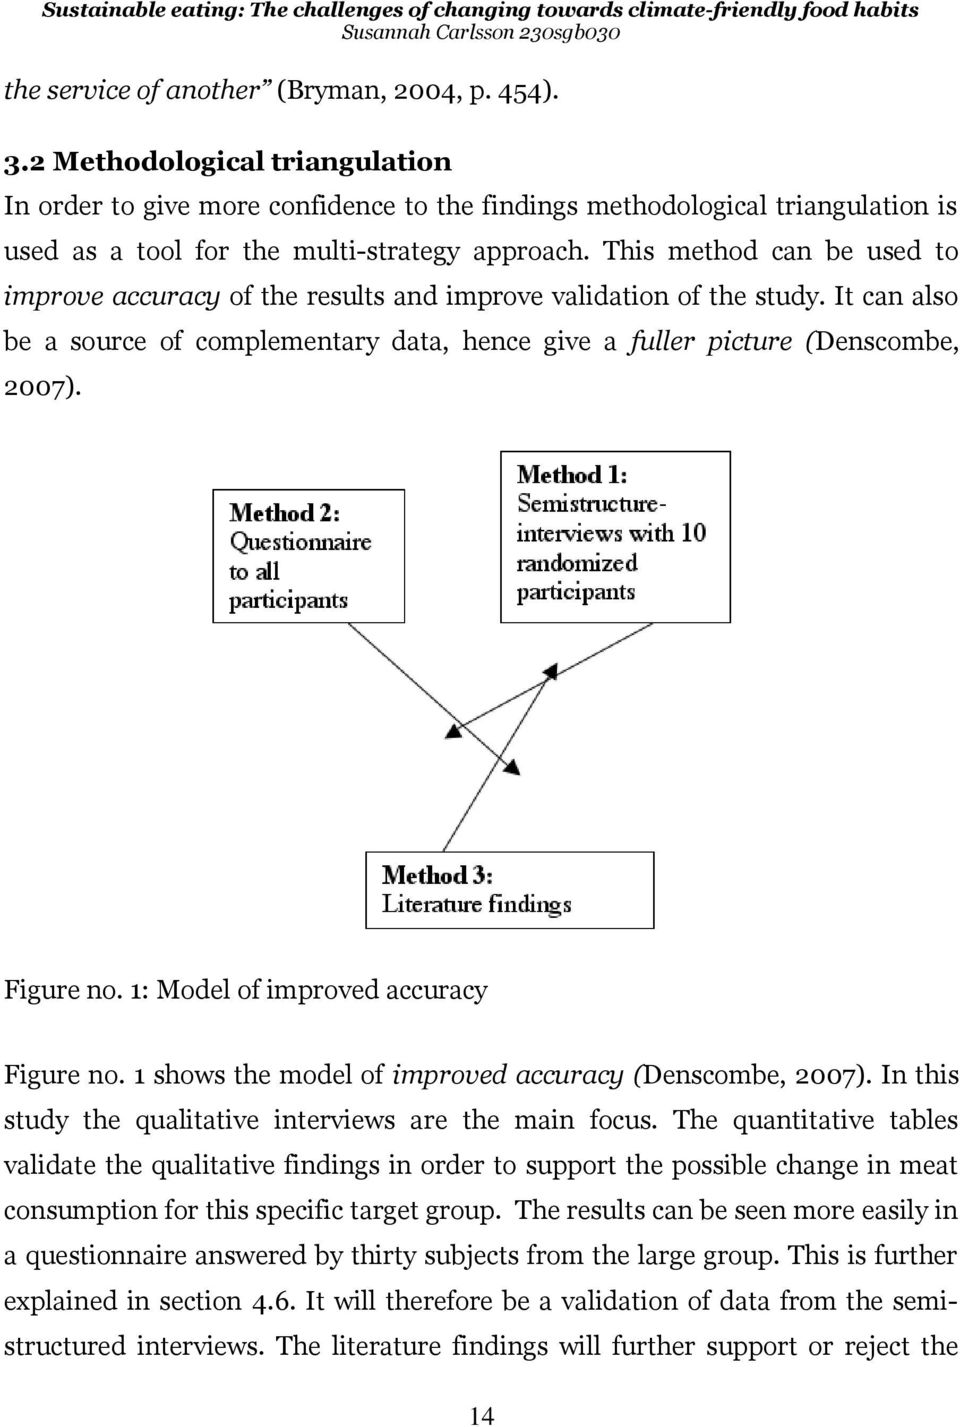 This method can be used to improve accuracy of the results and improve validation of the study. It can also be a source of complementary data, hence give a fuller picture (Denscombe, 2007). Figure no.